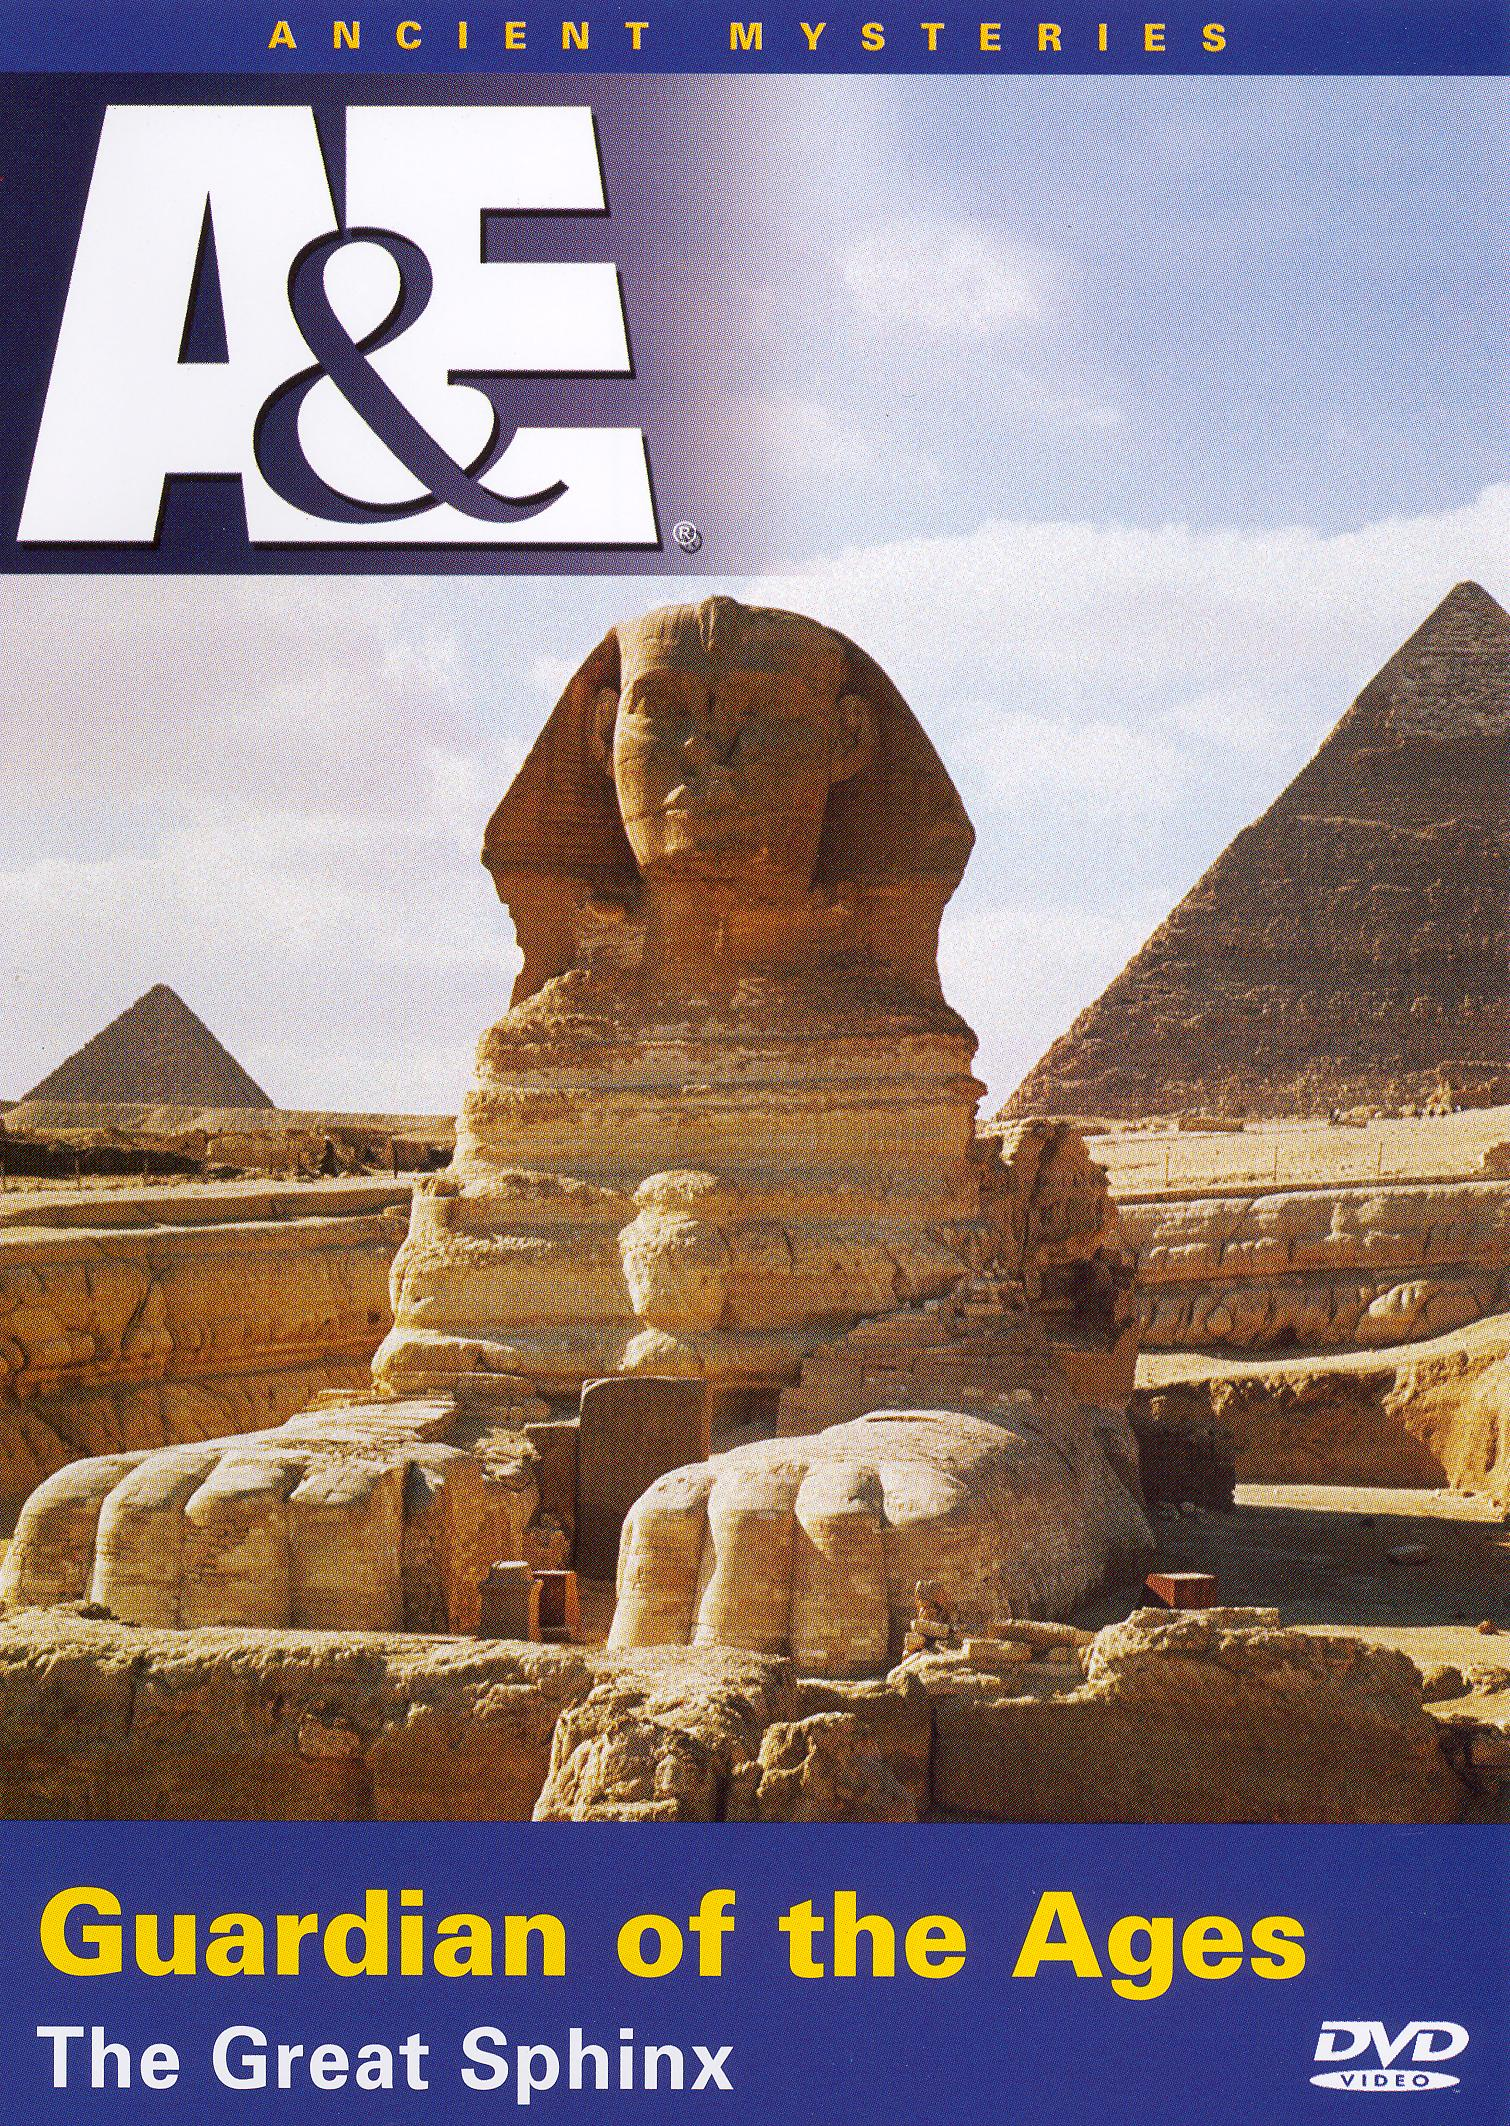 Ancient Mysteries: Guardian of the Ages - The Great Sphinx